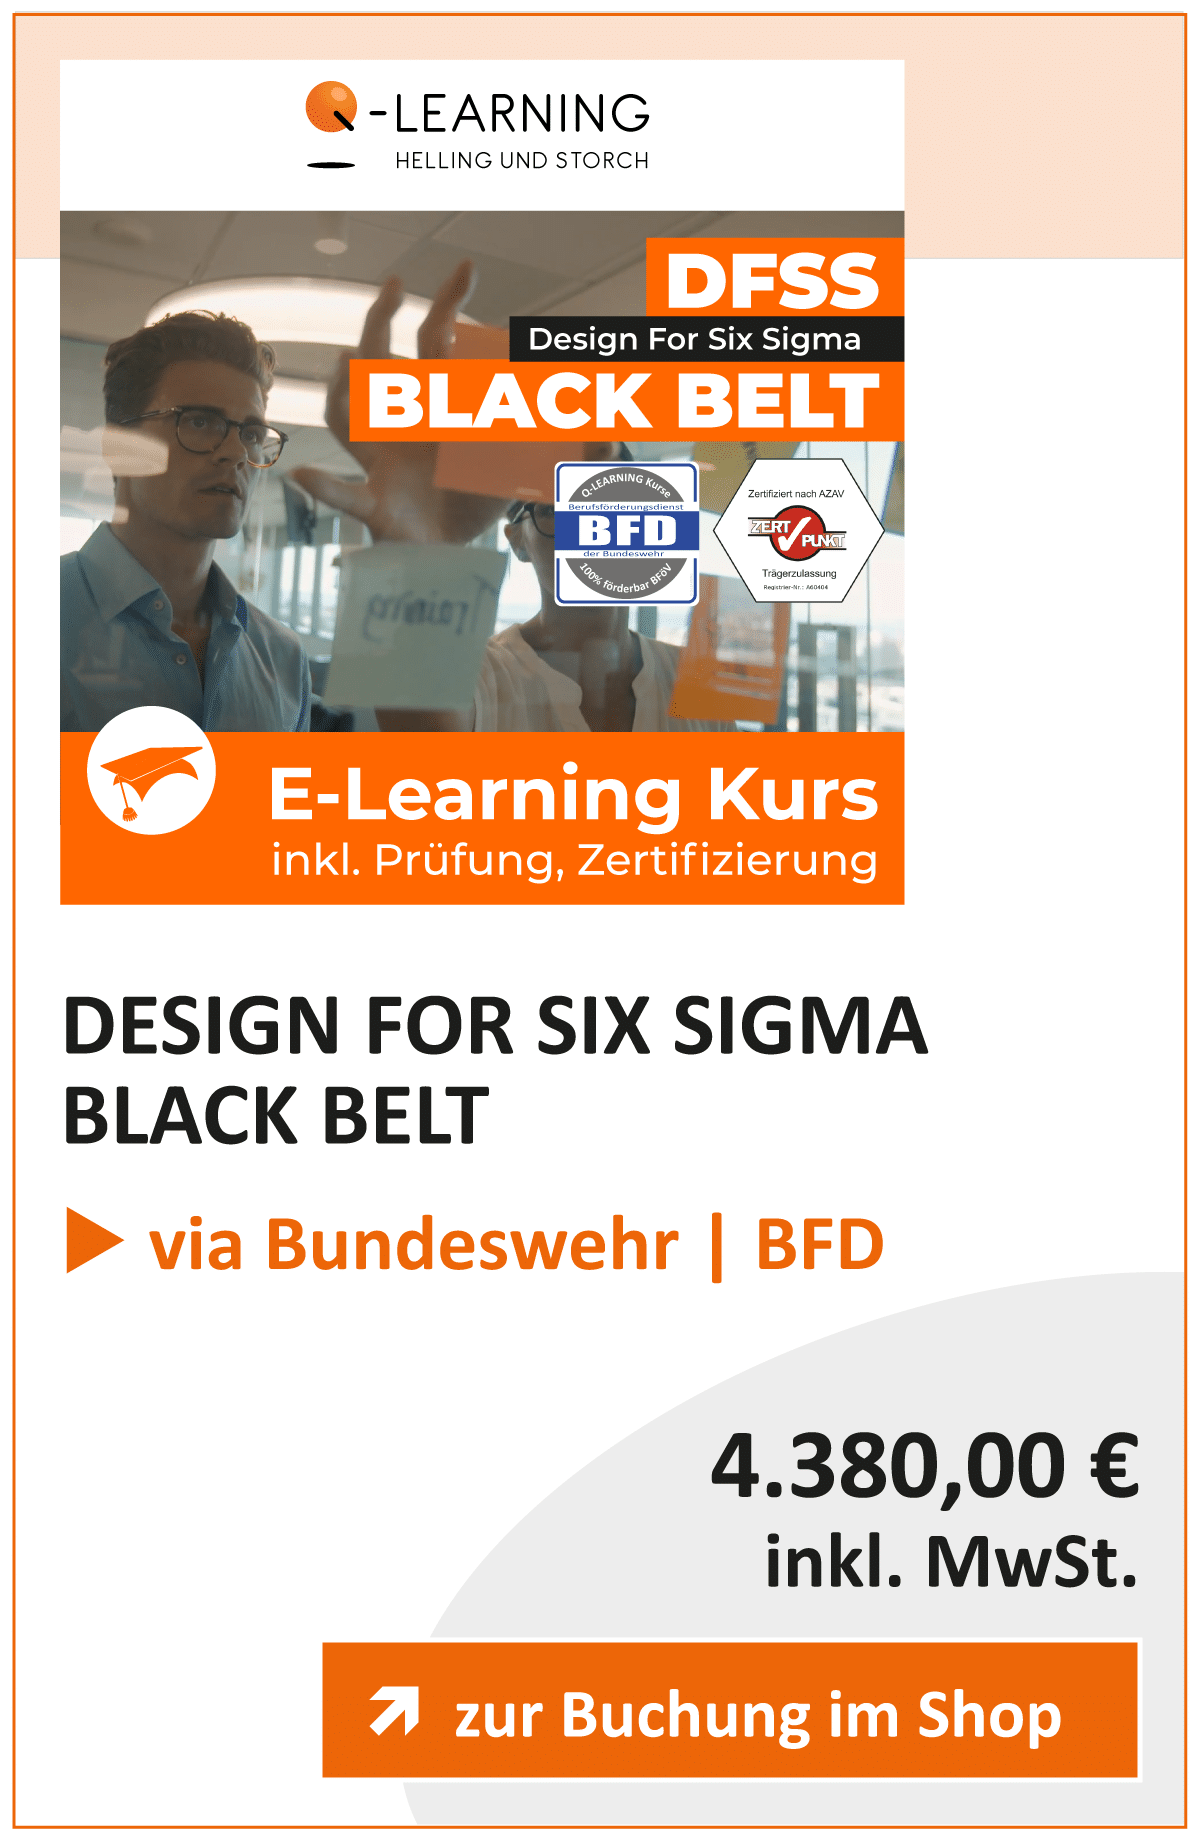 Produktbox DFSS DESIGN FOR SIX SIGMA Black Belt BFD